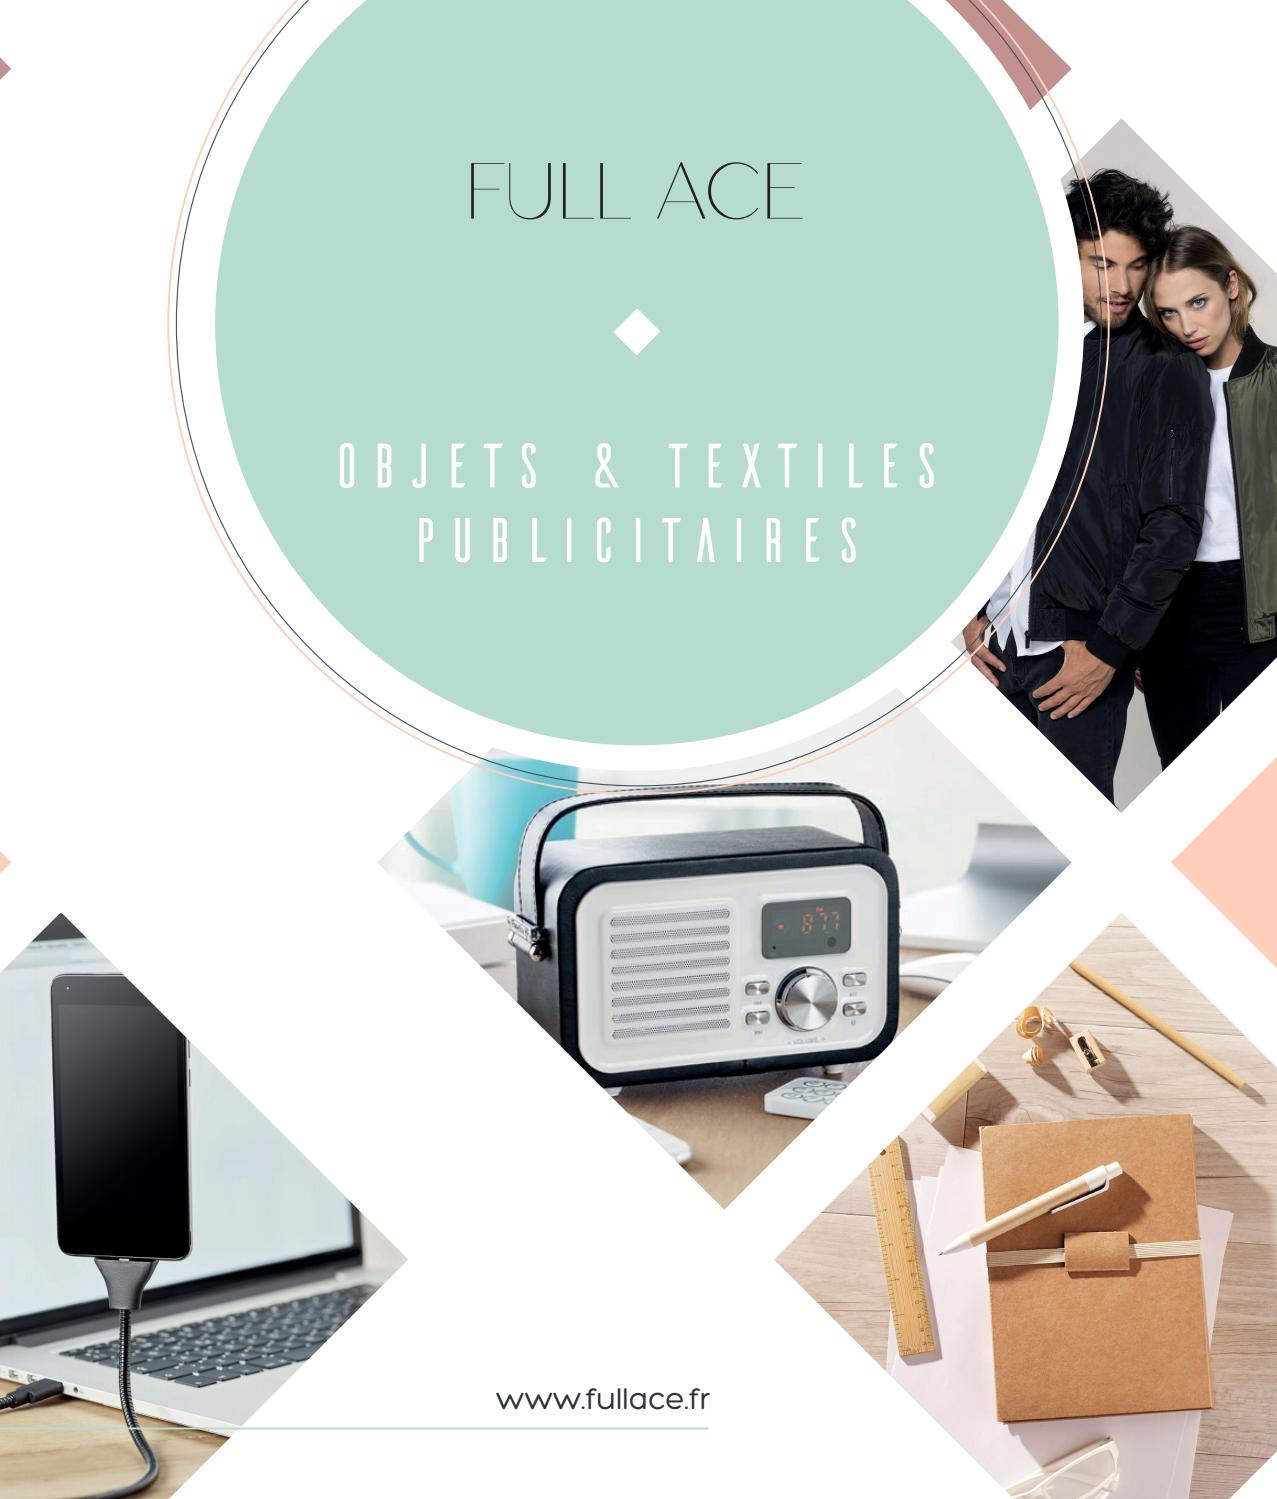 ec9808e63c10b Fullace 2018 by Objectif Goodies - issuu